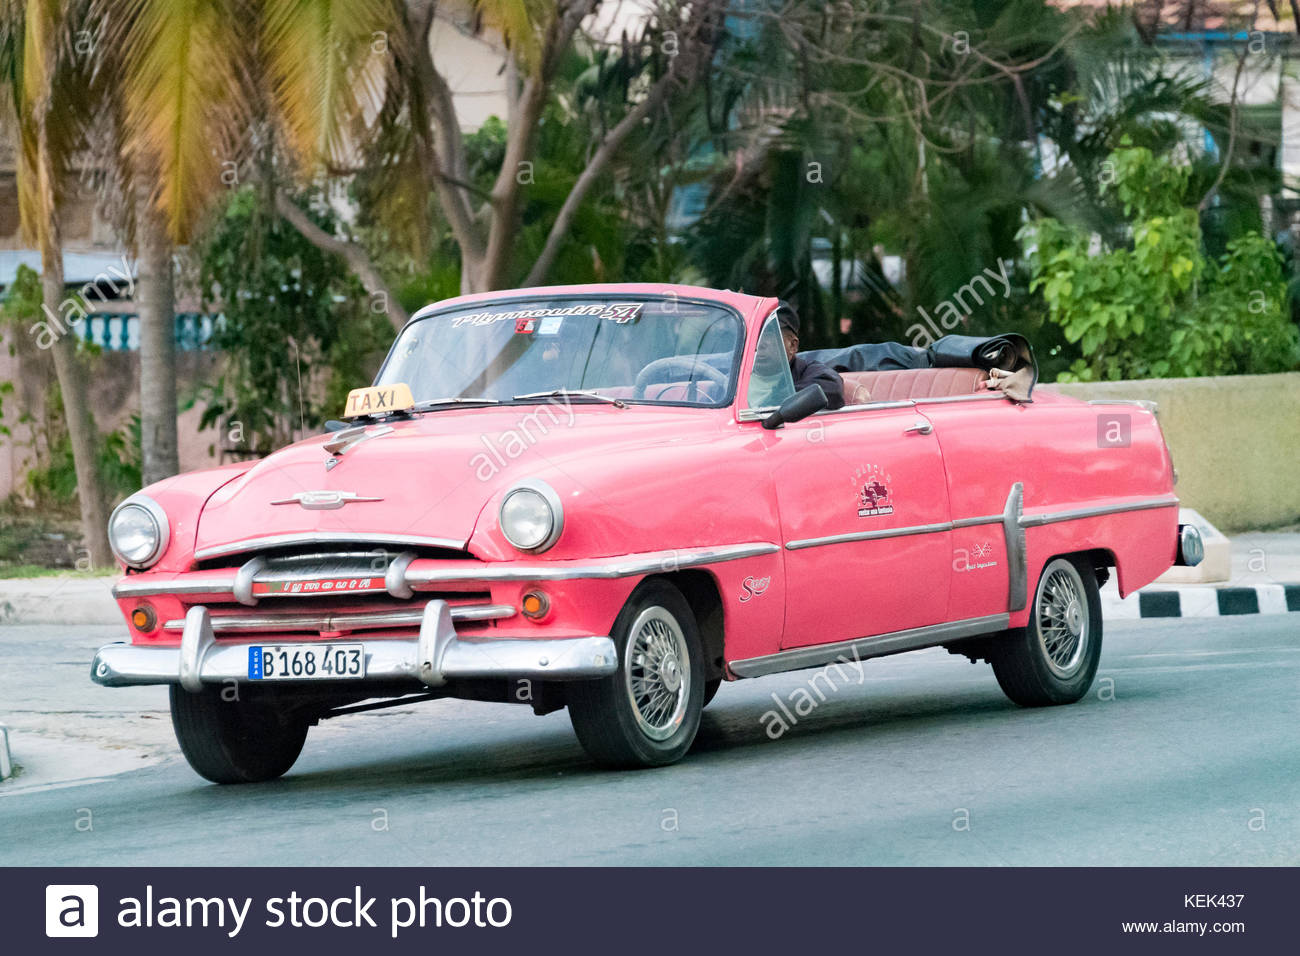 Pink Convertible Taxi Stock Photos & Pink Convertible Taxi Stock ...